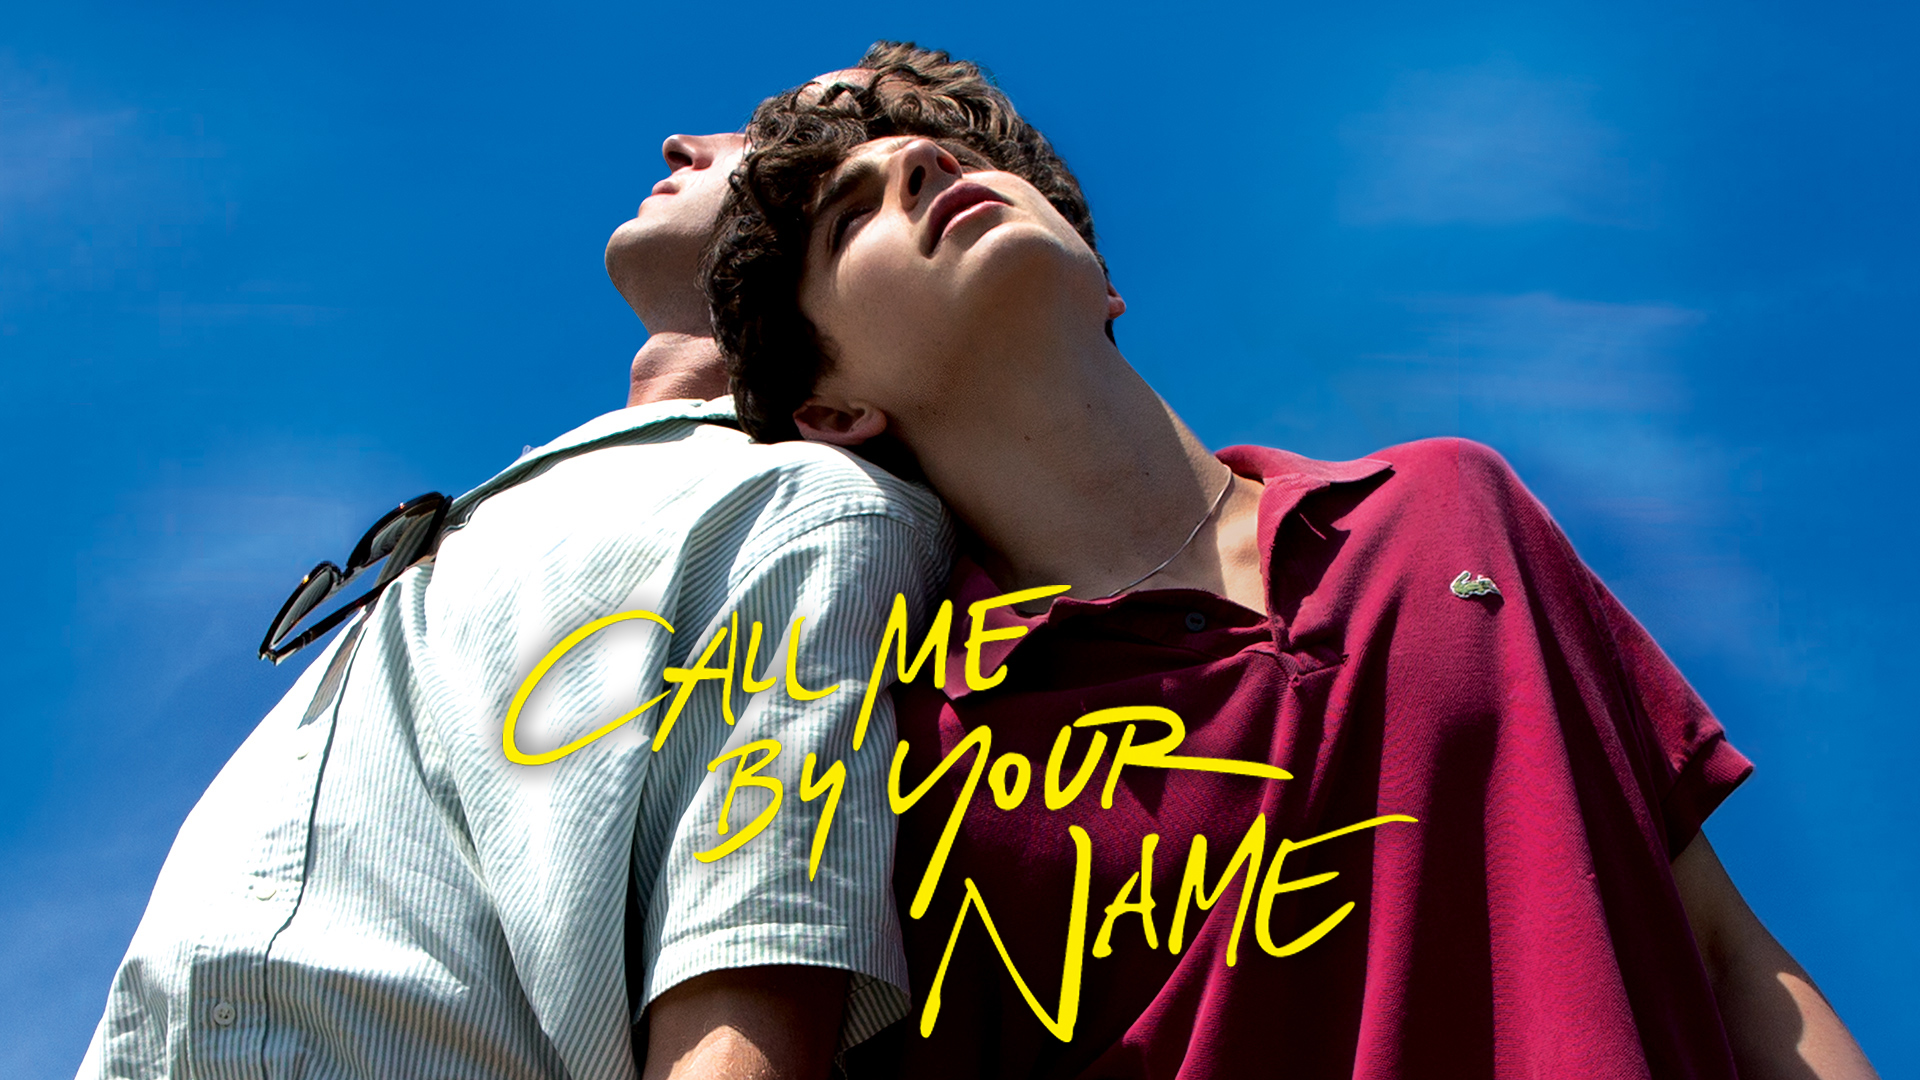 Kritik Call Me By Your Name Wunderschön Bebildertes Drama Voller